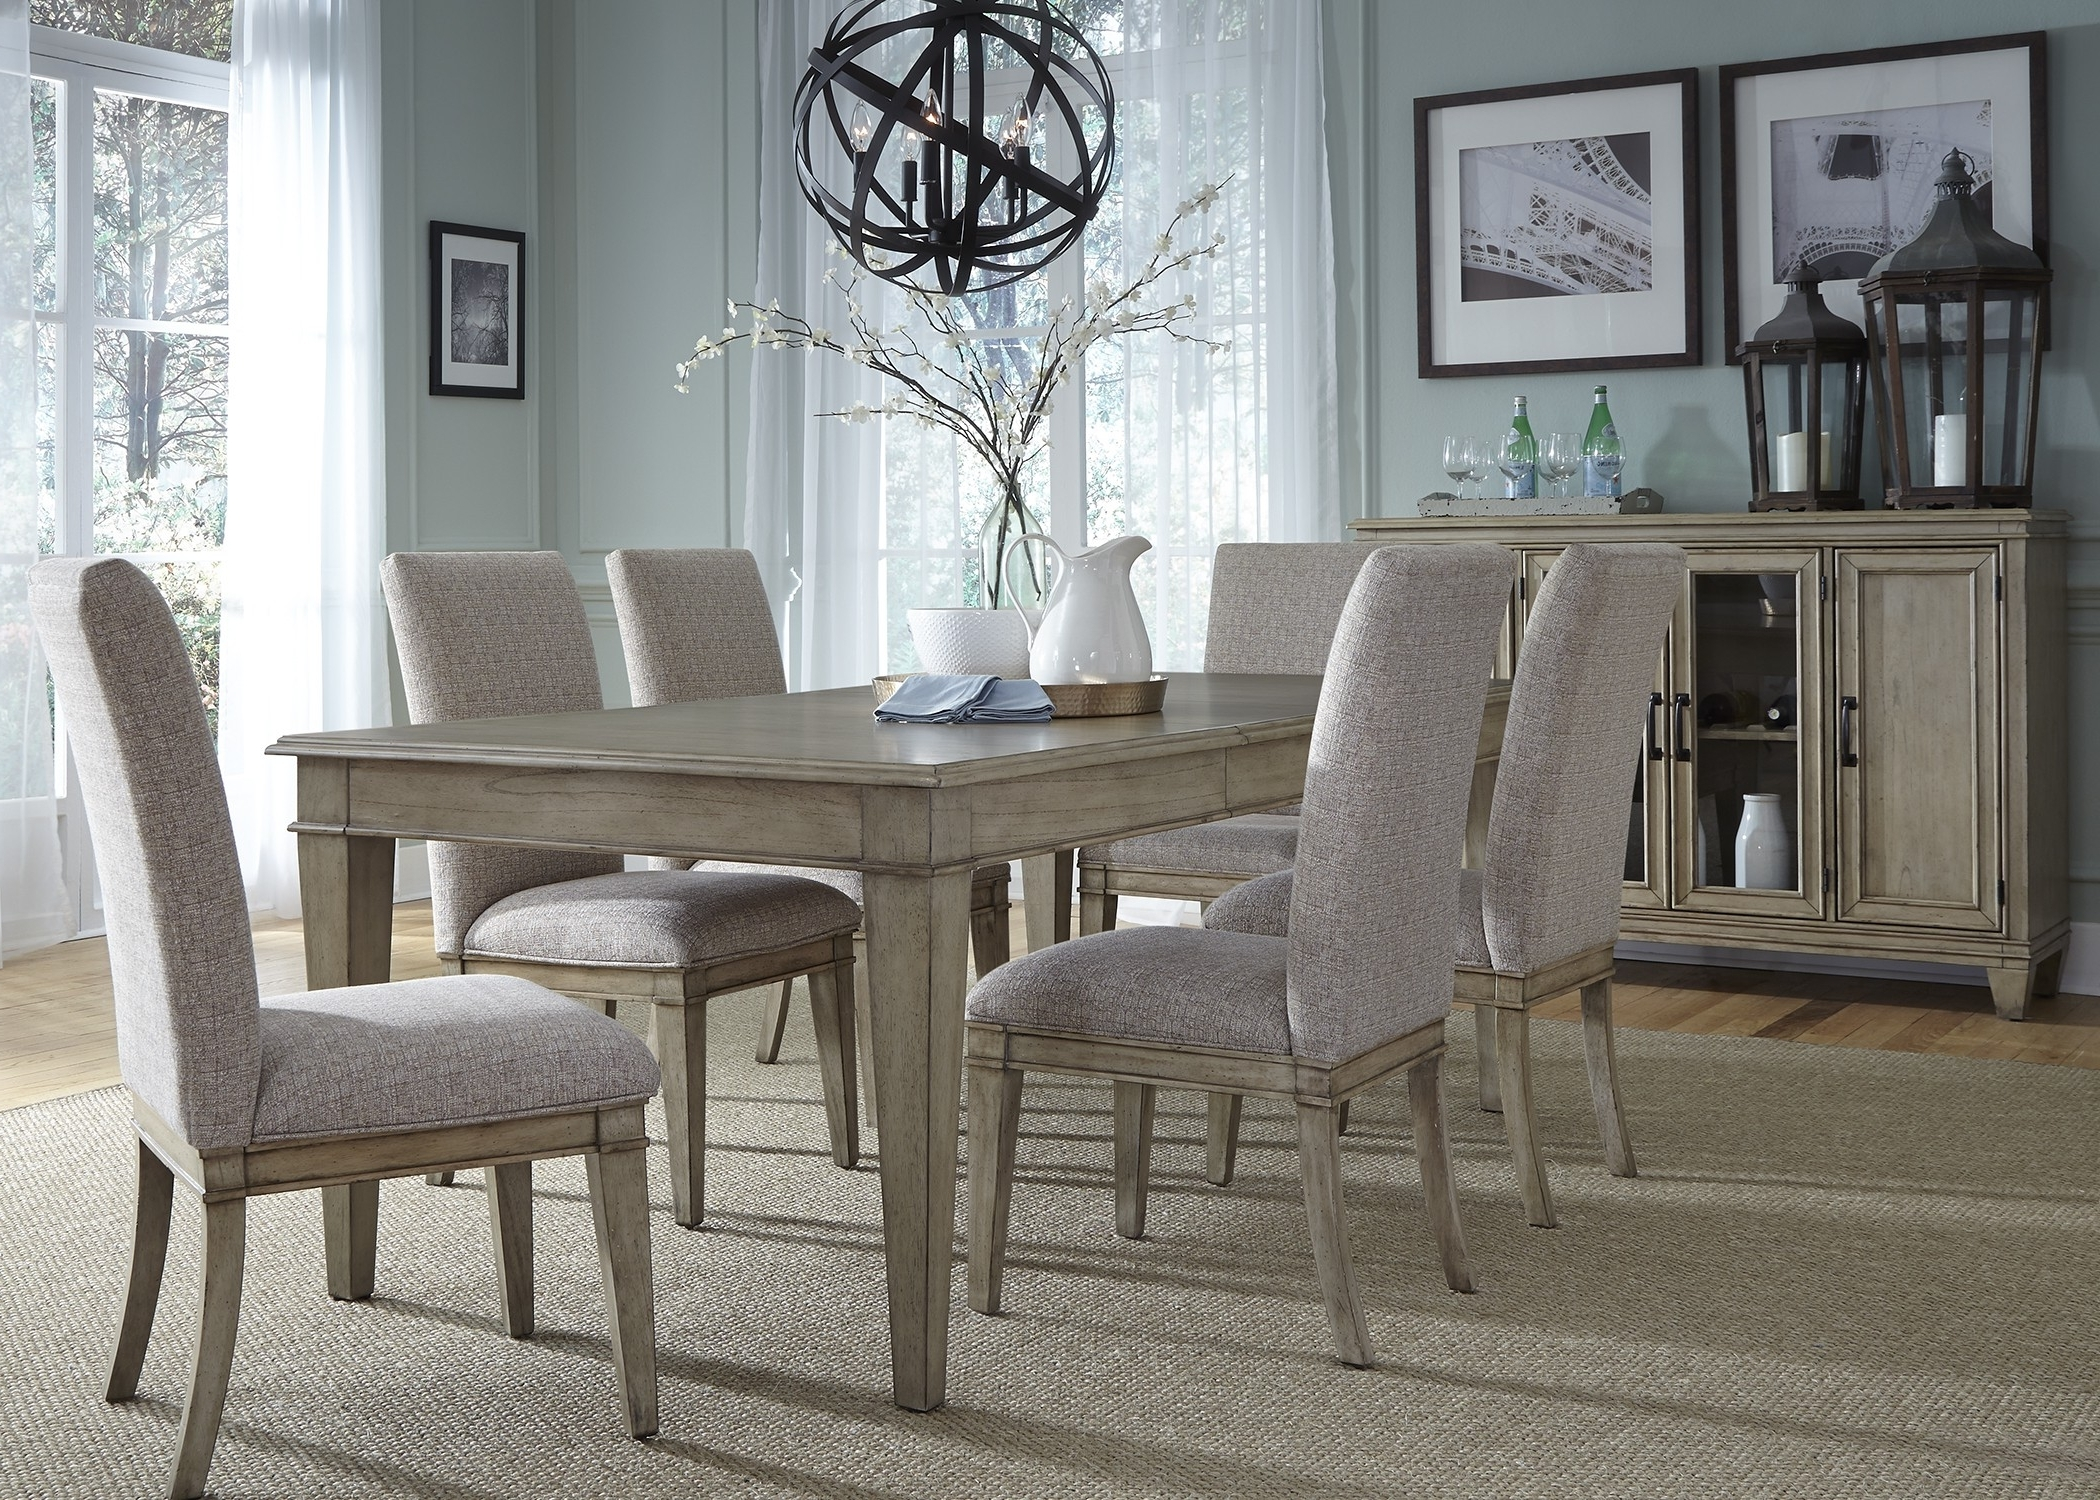 Jaxon Grey 6 Piece Rectangle Extension Dining Sets With Bench & Uph Chairs With Regard To Current 18. Grayton Grove Extendable Dining Room Set From Liberty Coleman (Gallery 20 of 25)